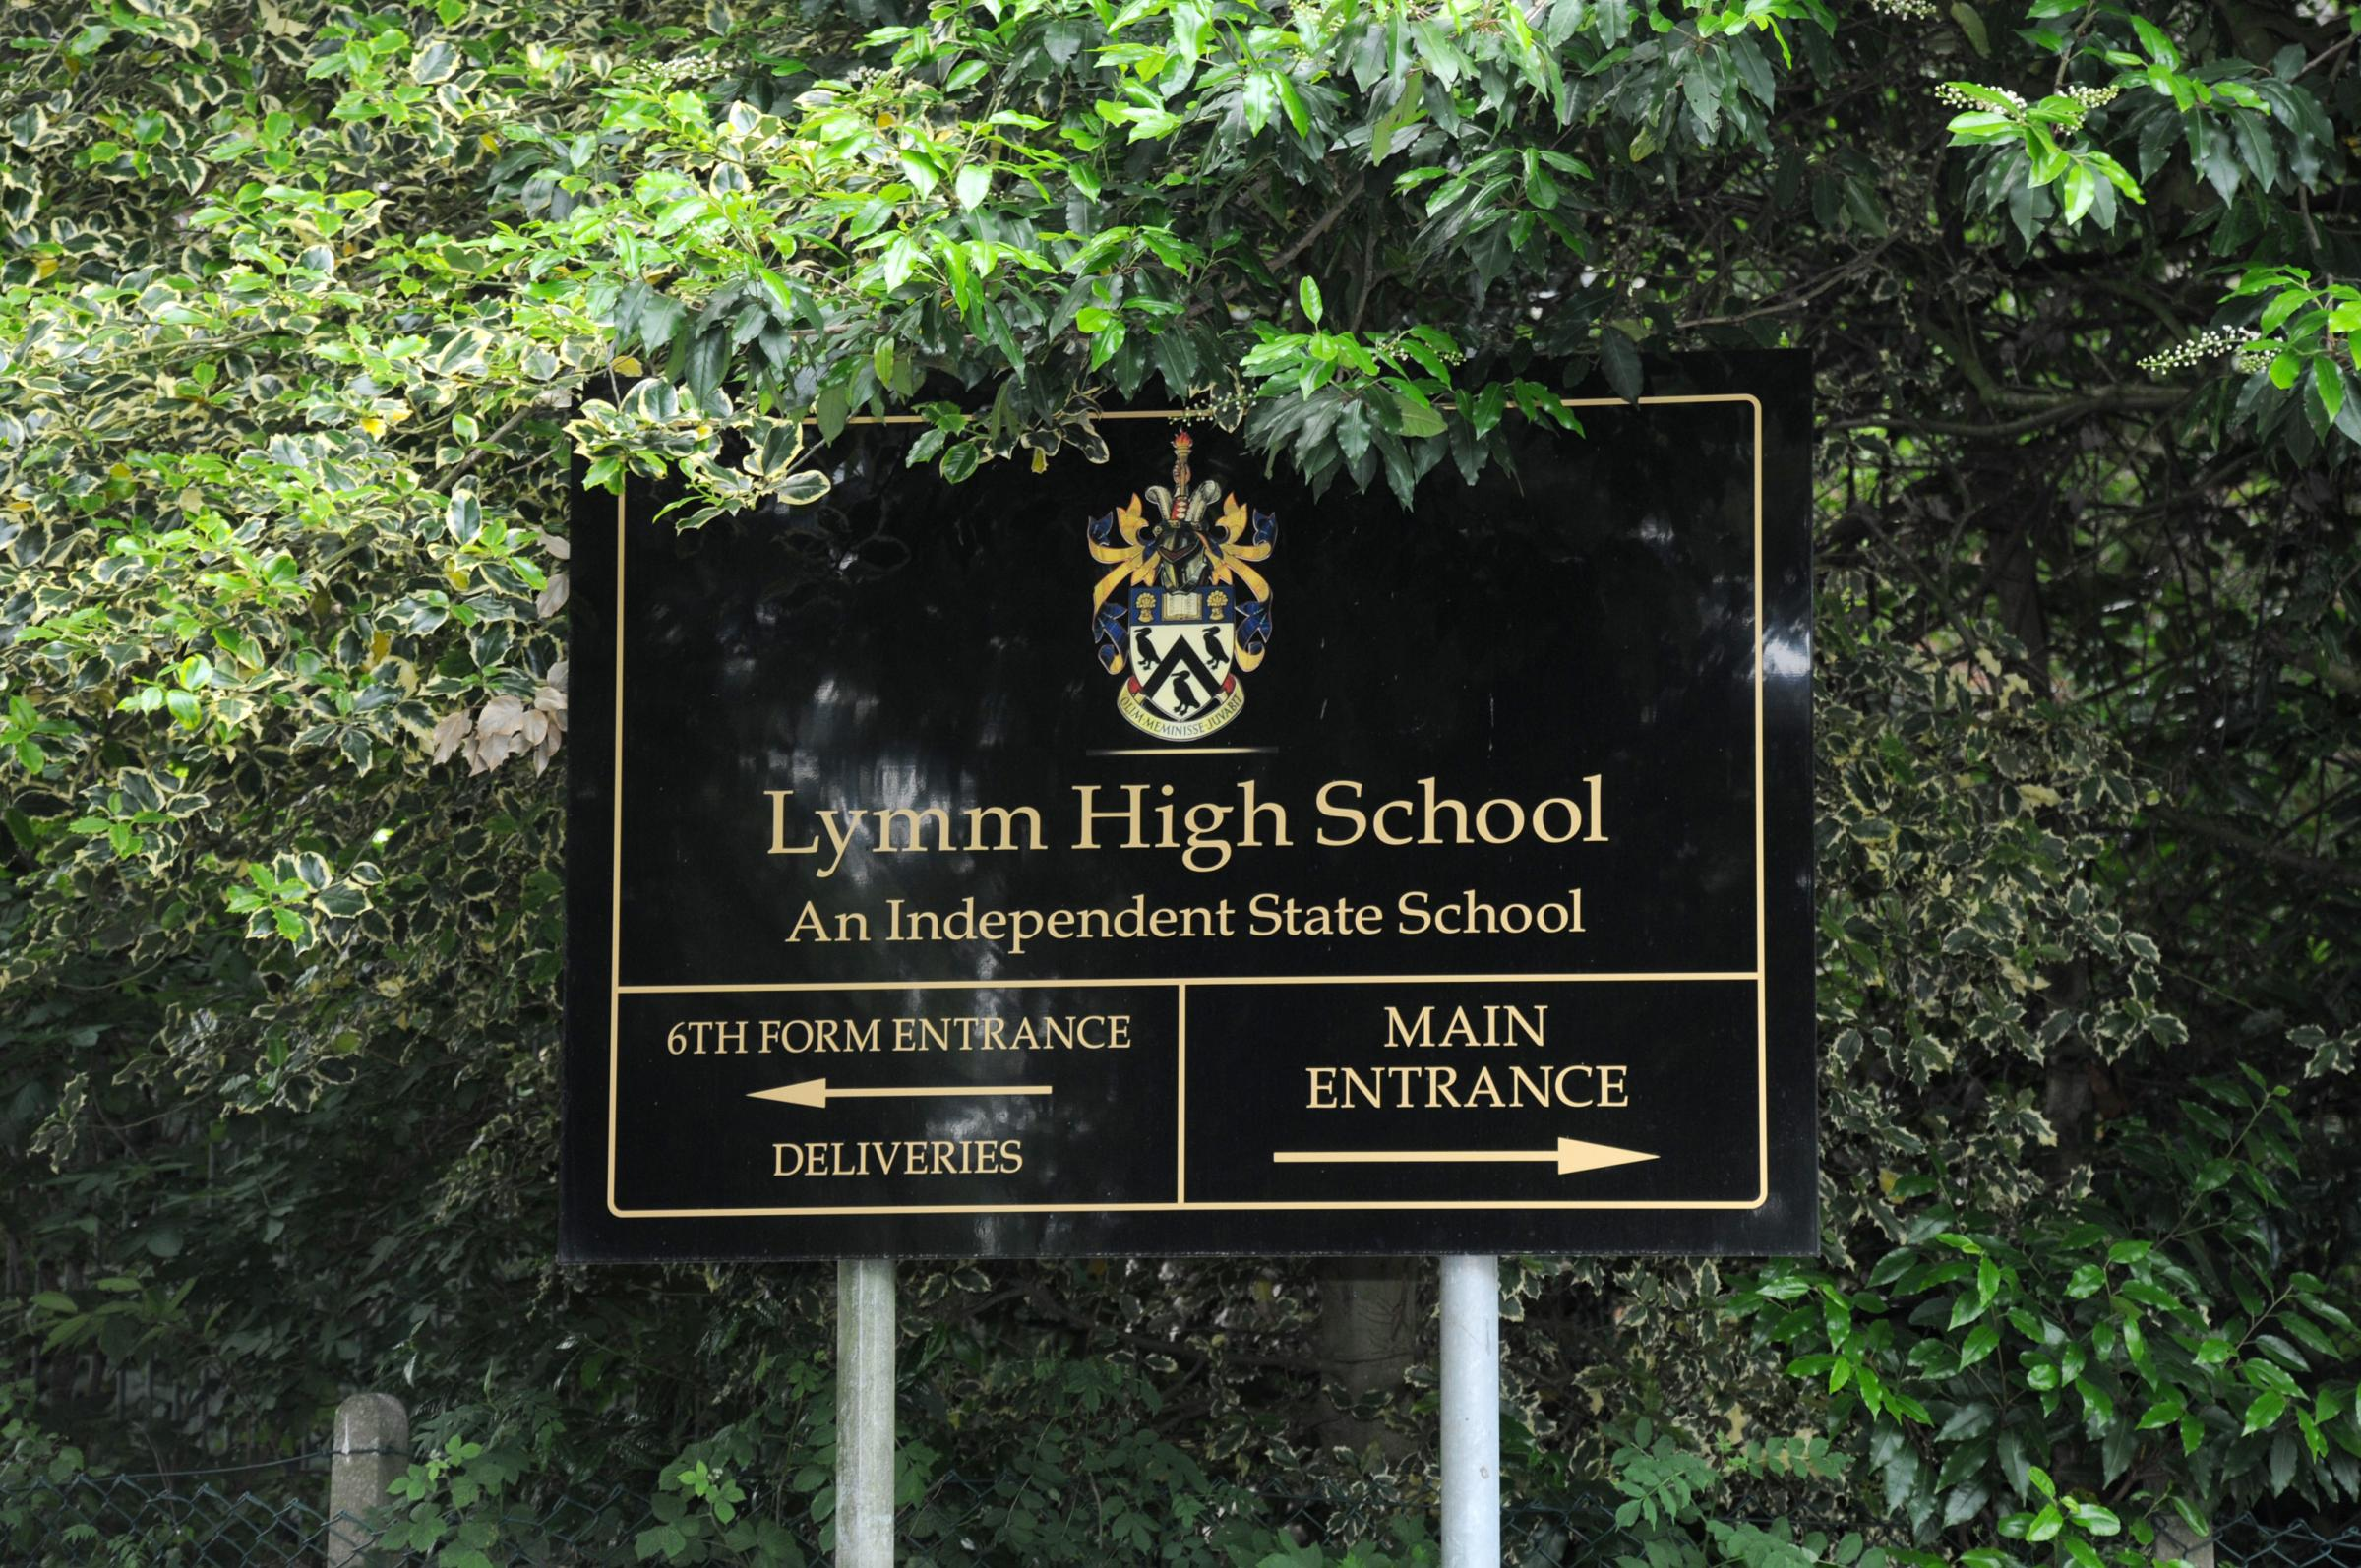 Lymm High School awarded second highest Ofsted rating